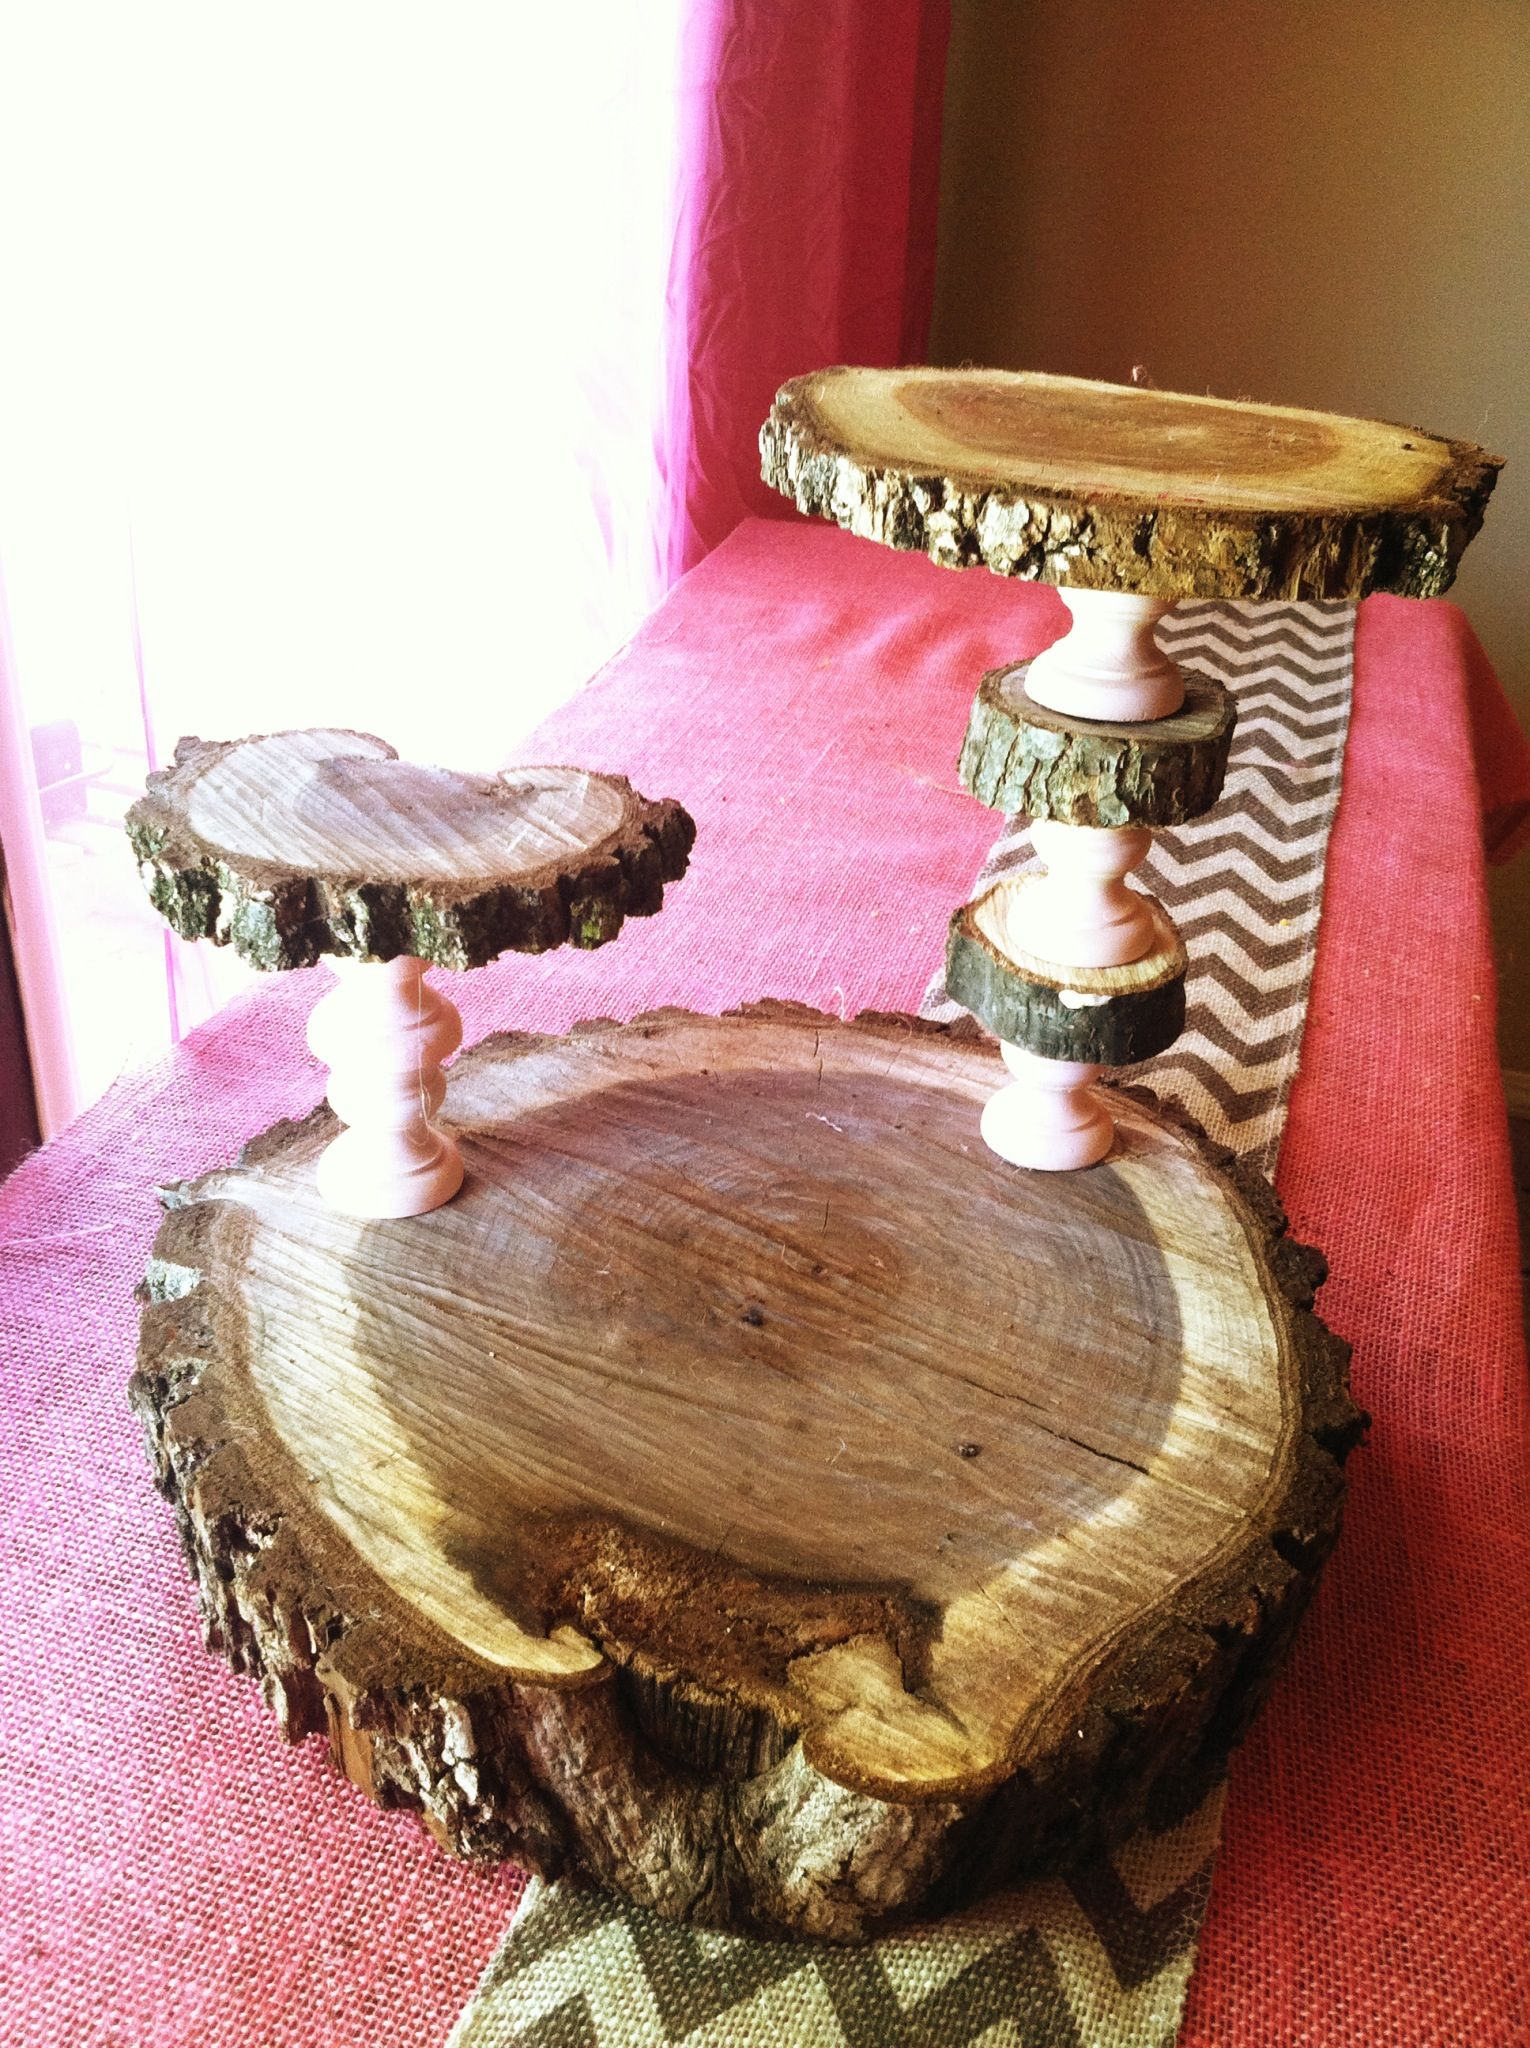 Three Tier Cupcake Stand Made Out Of Wood Slices And Painted Wood Candle Holders The C Wood Candle Holders Diy Painted Wood Candle Holders Wood Candle Holders